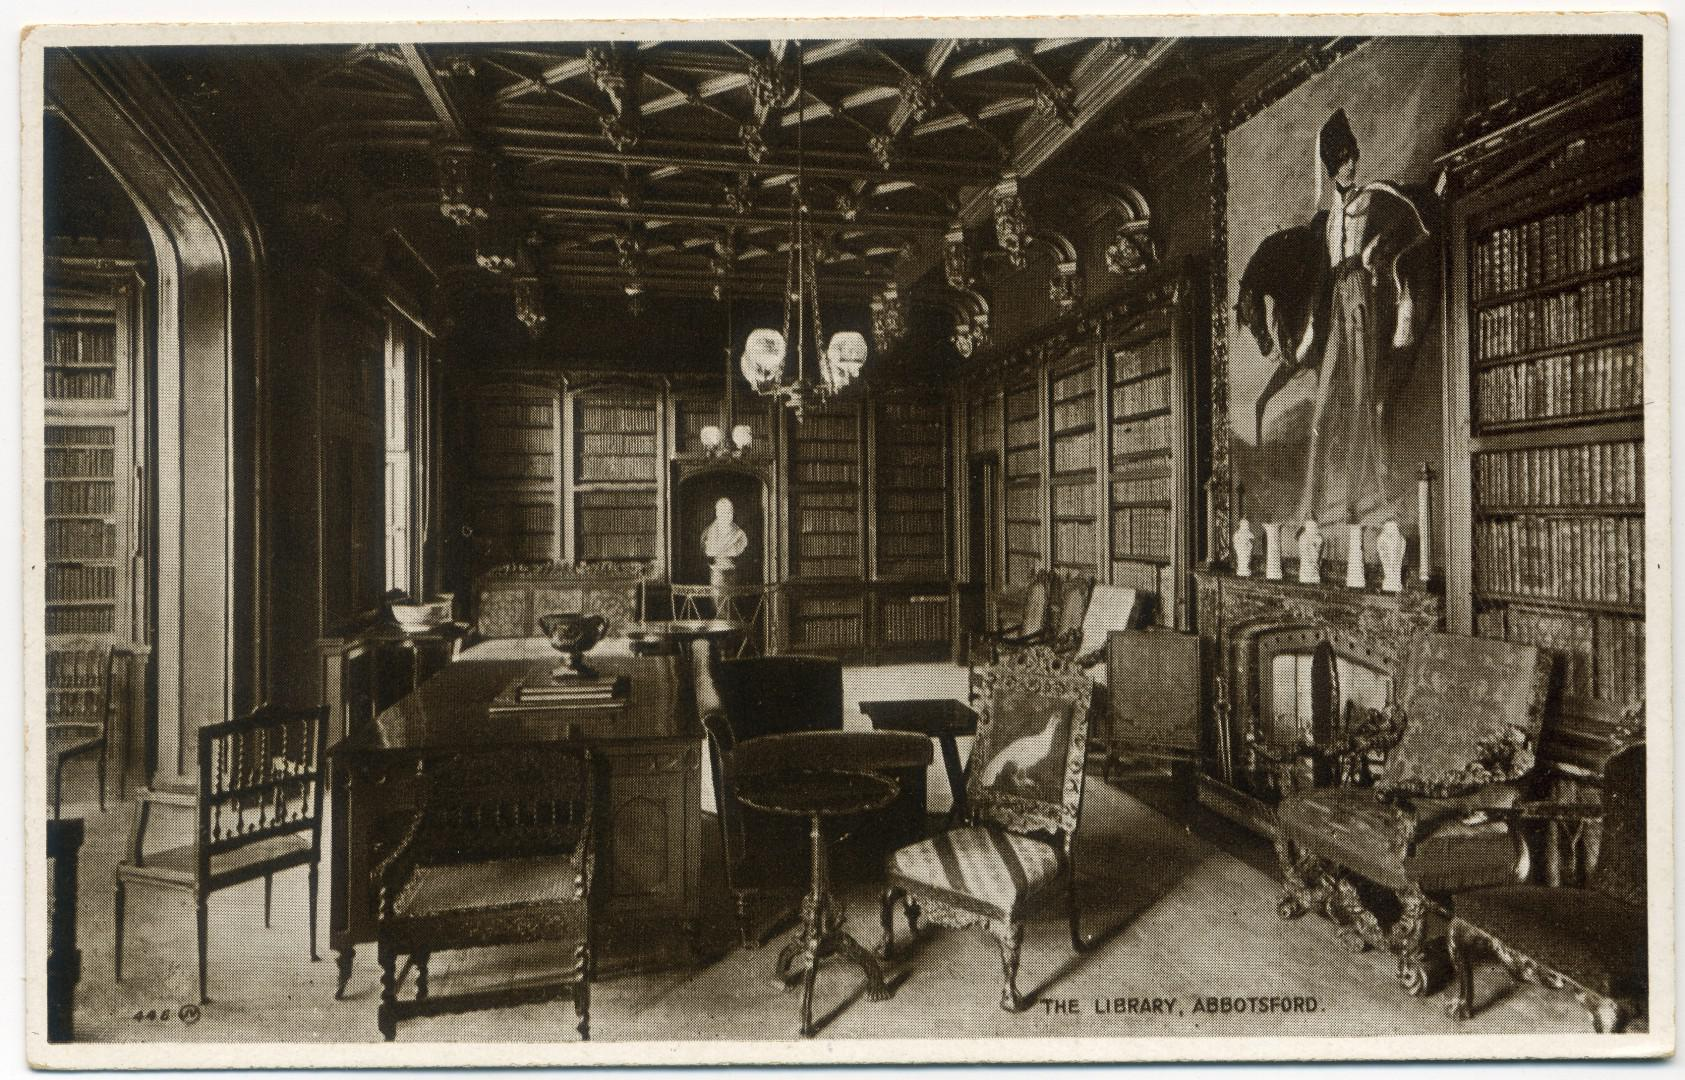 Galashiels: Abbotsford House, The Library